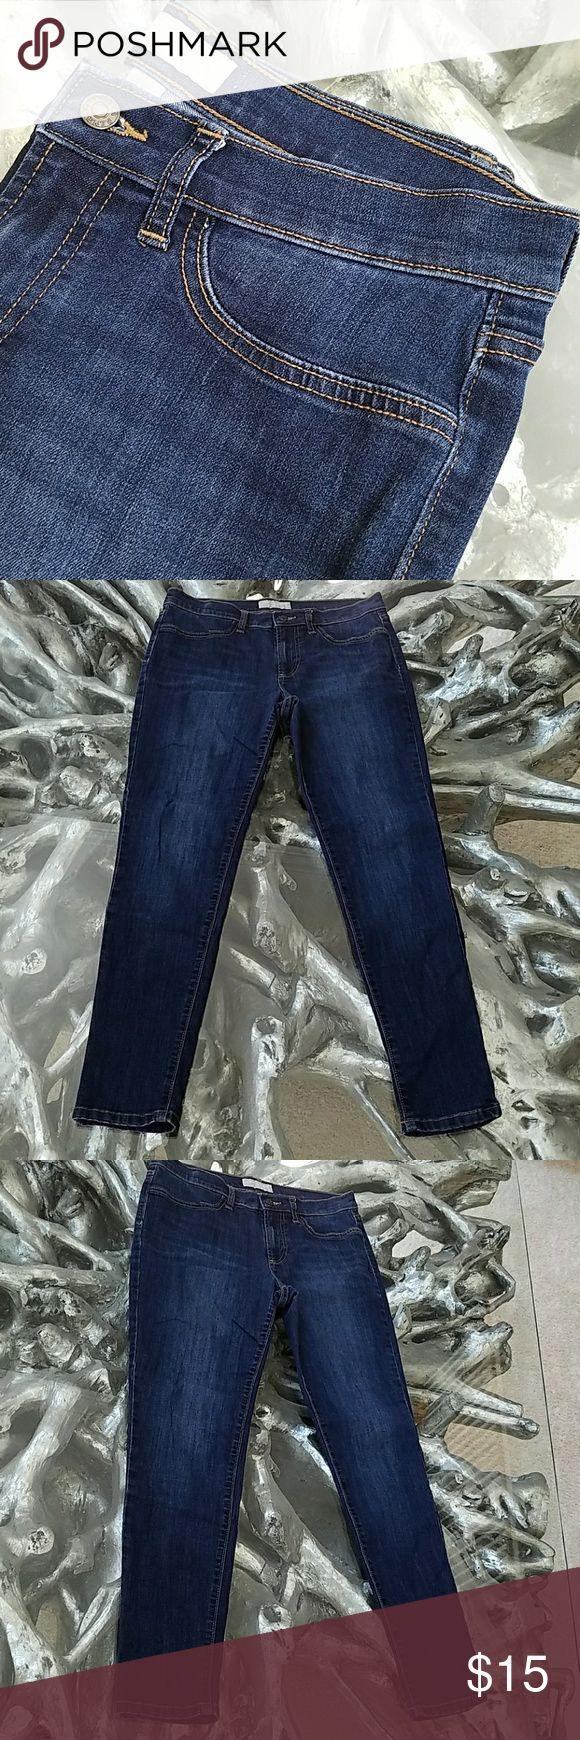 Banana Republic Legging Skinny Jeans - Size 10 Gently used, popular stretch style jeans from Banana Republic in great condition. Size 30/10.  This listing is for one pair of jeans. I have 4 pairs available. Banana Republic Jeans Skinny